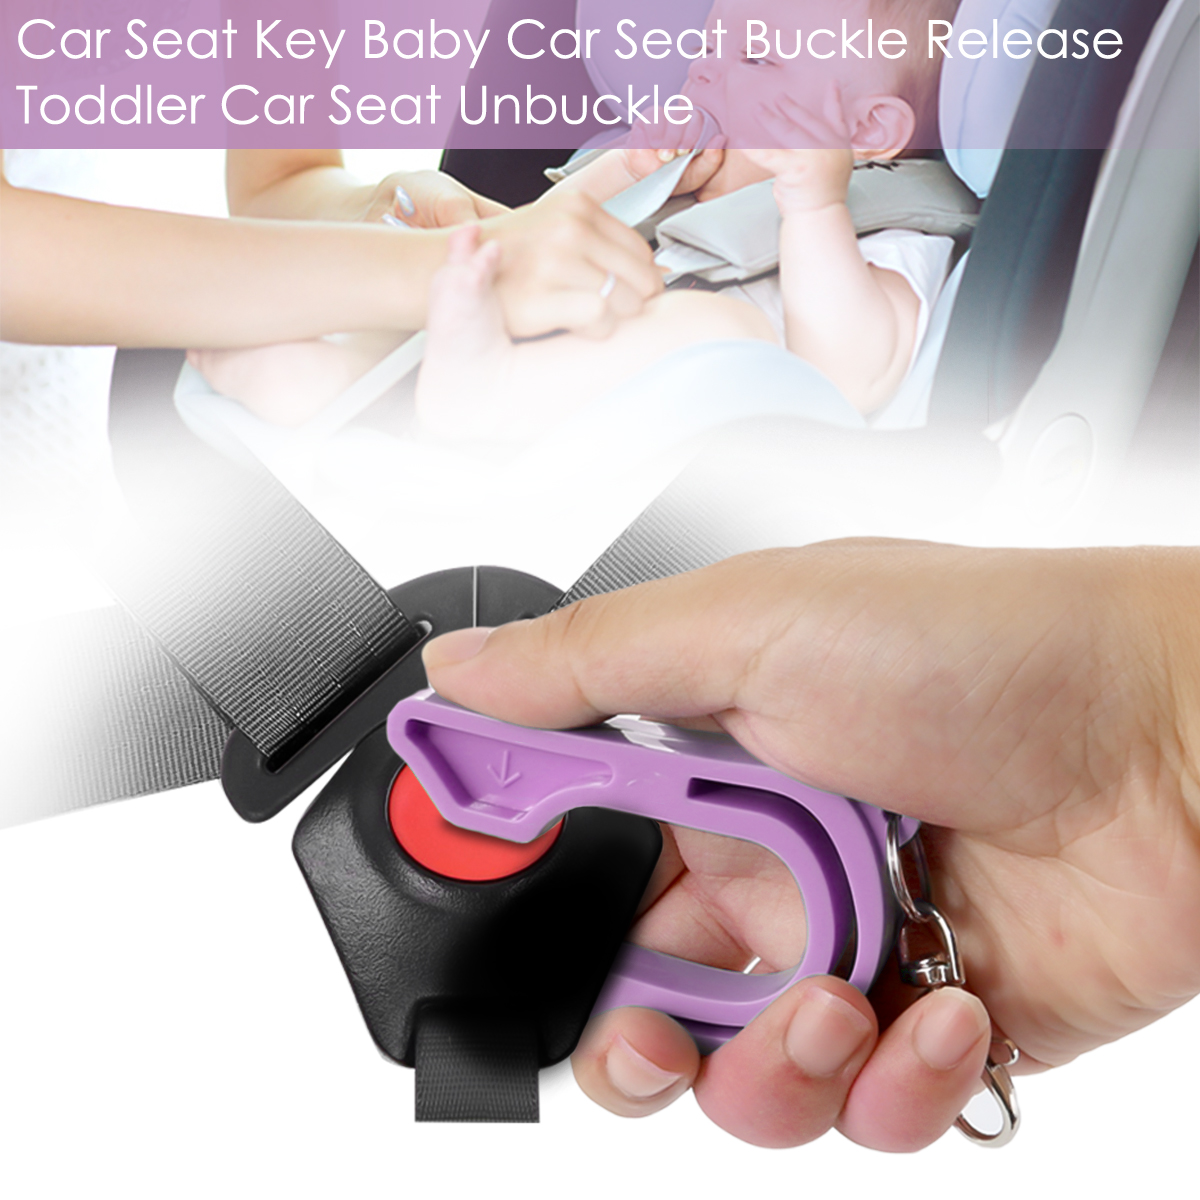 Car Seat Key Baby Seat Safe Key Unbuckle With Keychain Seat For Kids Universal Professional Free Shipping